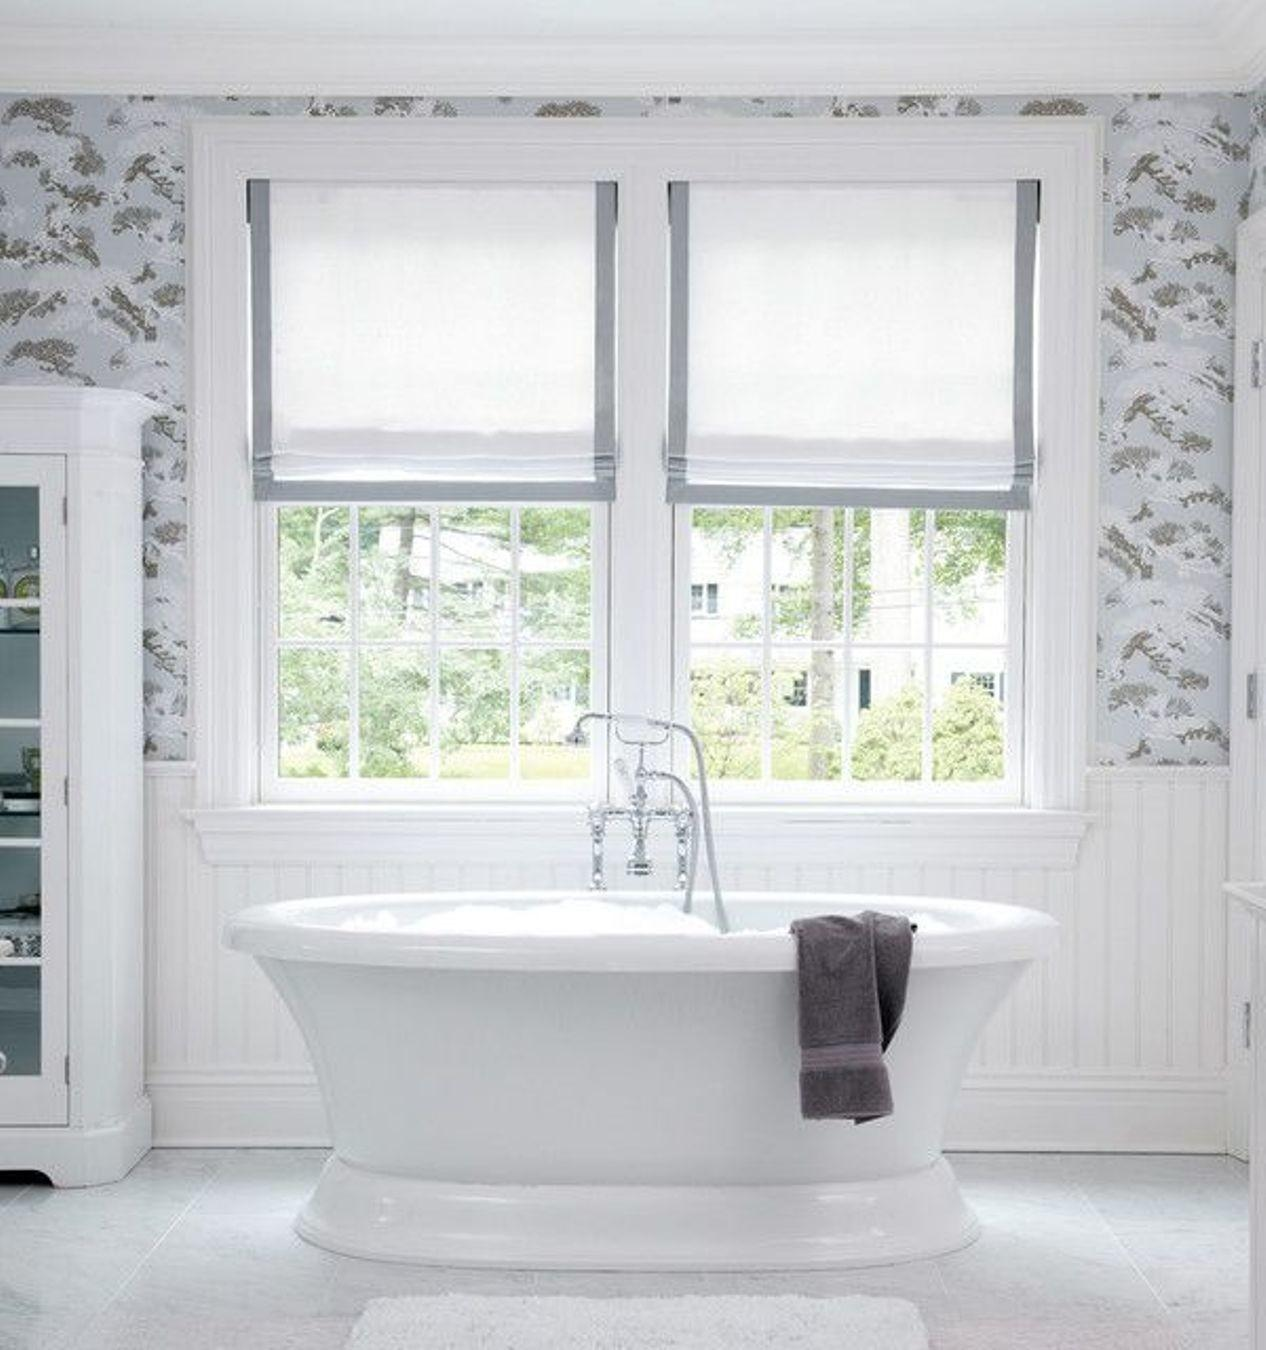 Contemporary Bathroom Window Treatments That Ideal For Your Dream